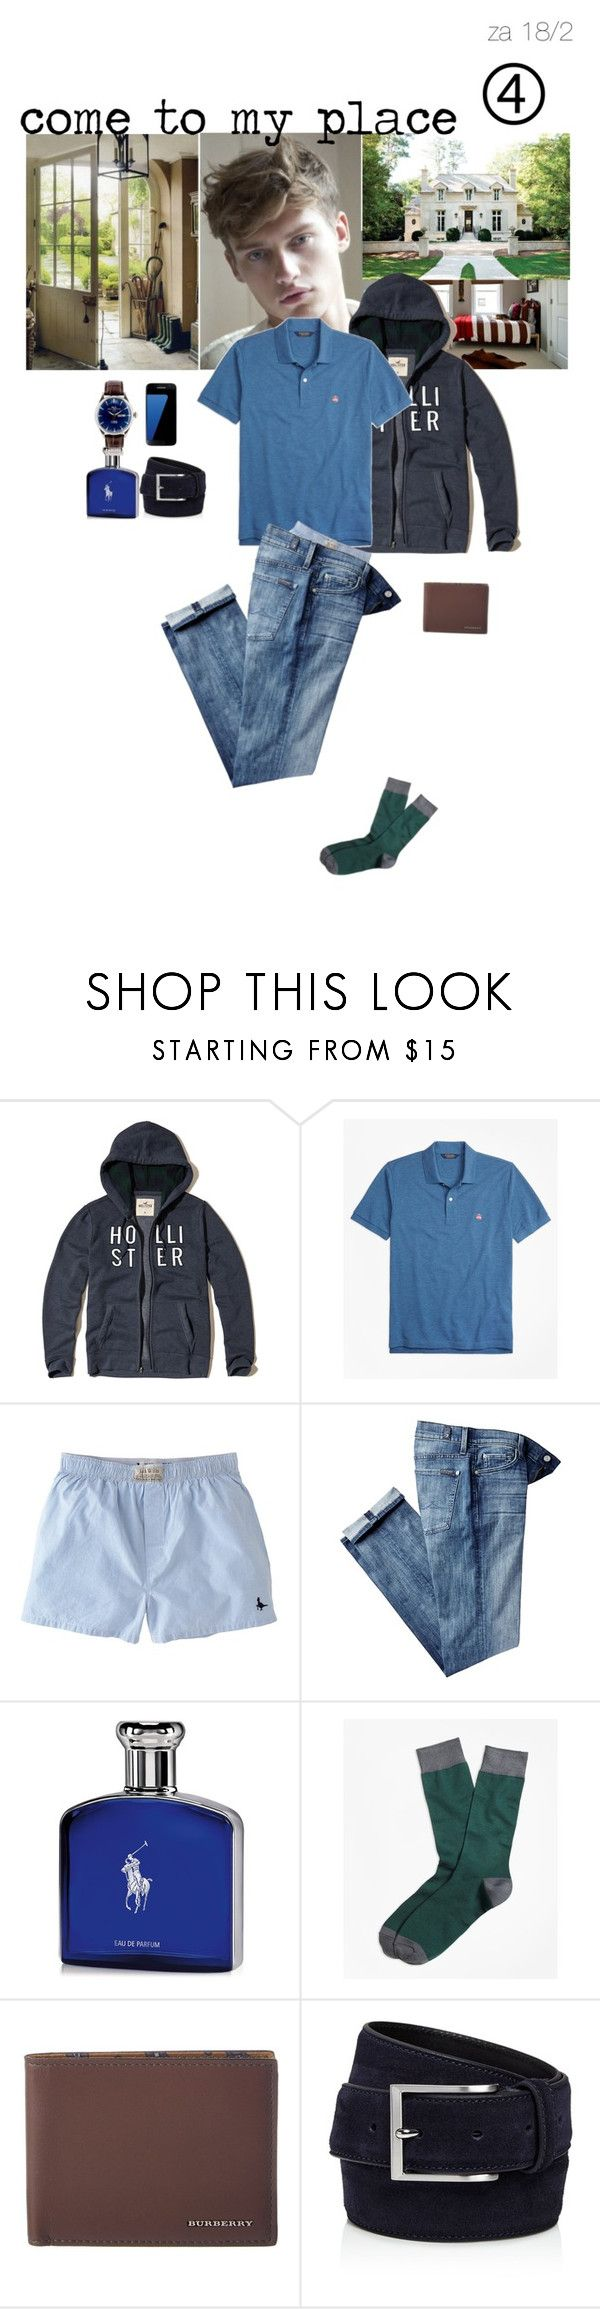 """Come to my place"" by adelaidesmitha ❤ liked on Polyvore featuring Hollister Co., Brooks Brothers, Jack Wills, 7 For All Mankind, Ralph Lauren, Burberry, To Boot New York, Samsung, men's fashion and menswear"